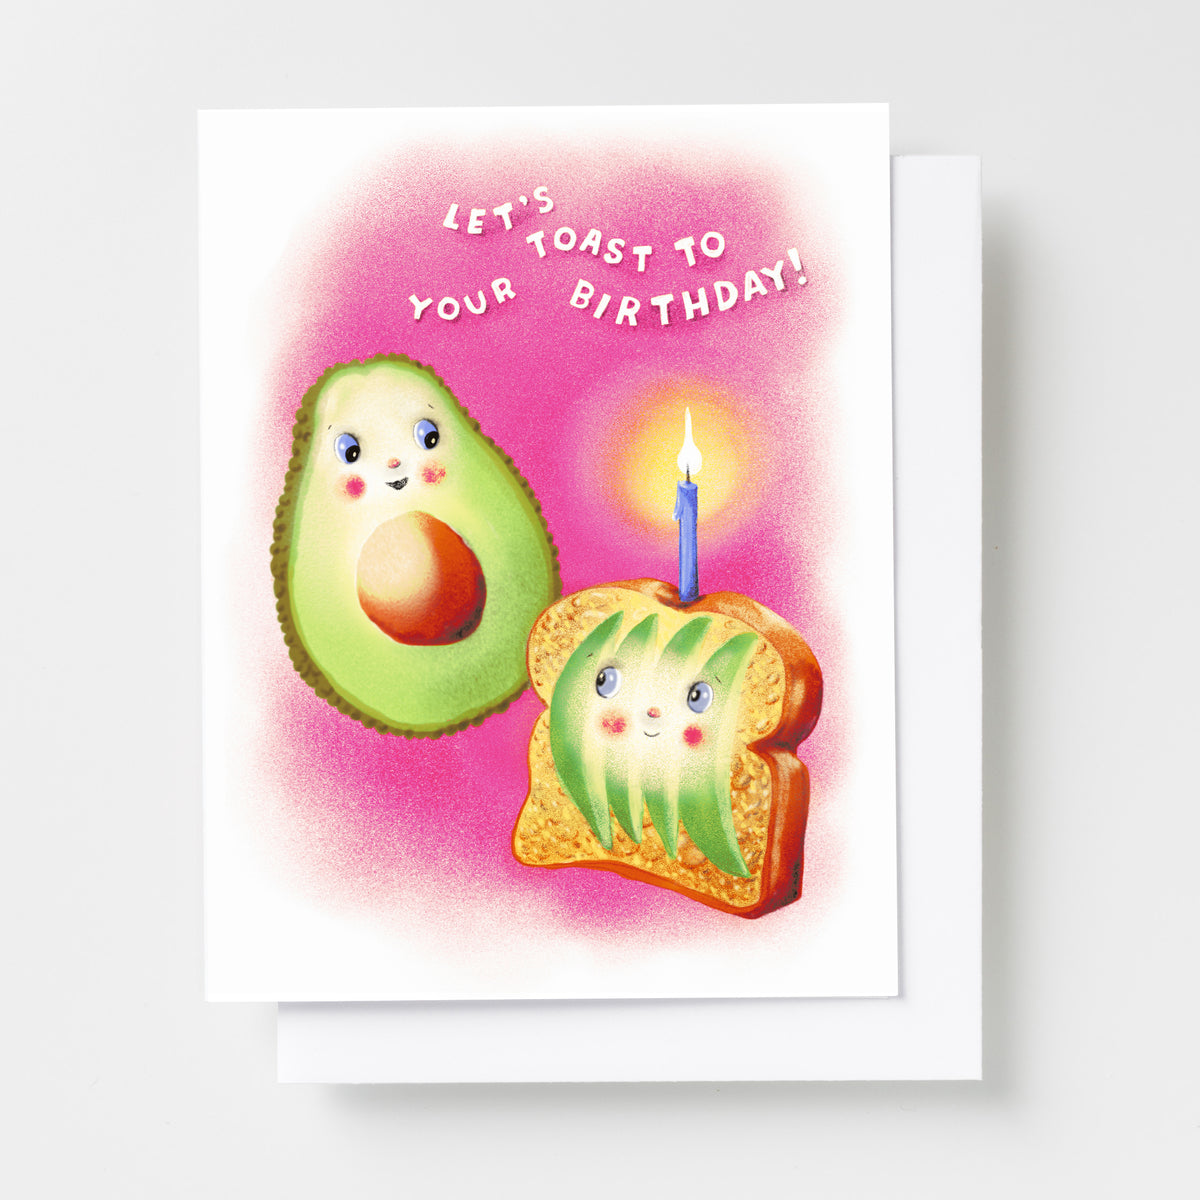 Avocado Toast to Your Birthday - Risograph Card